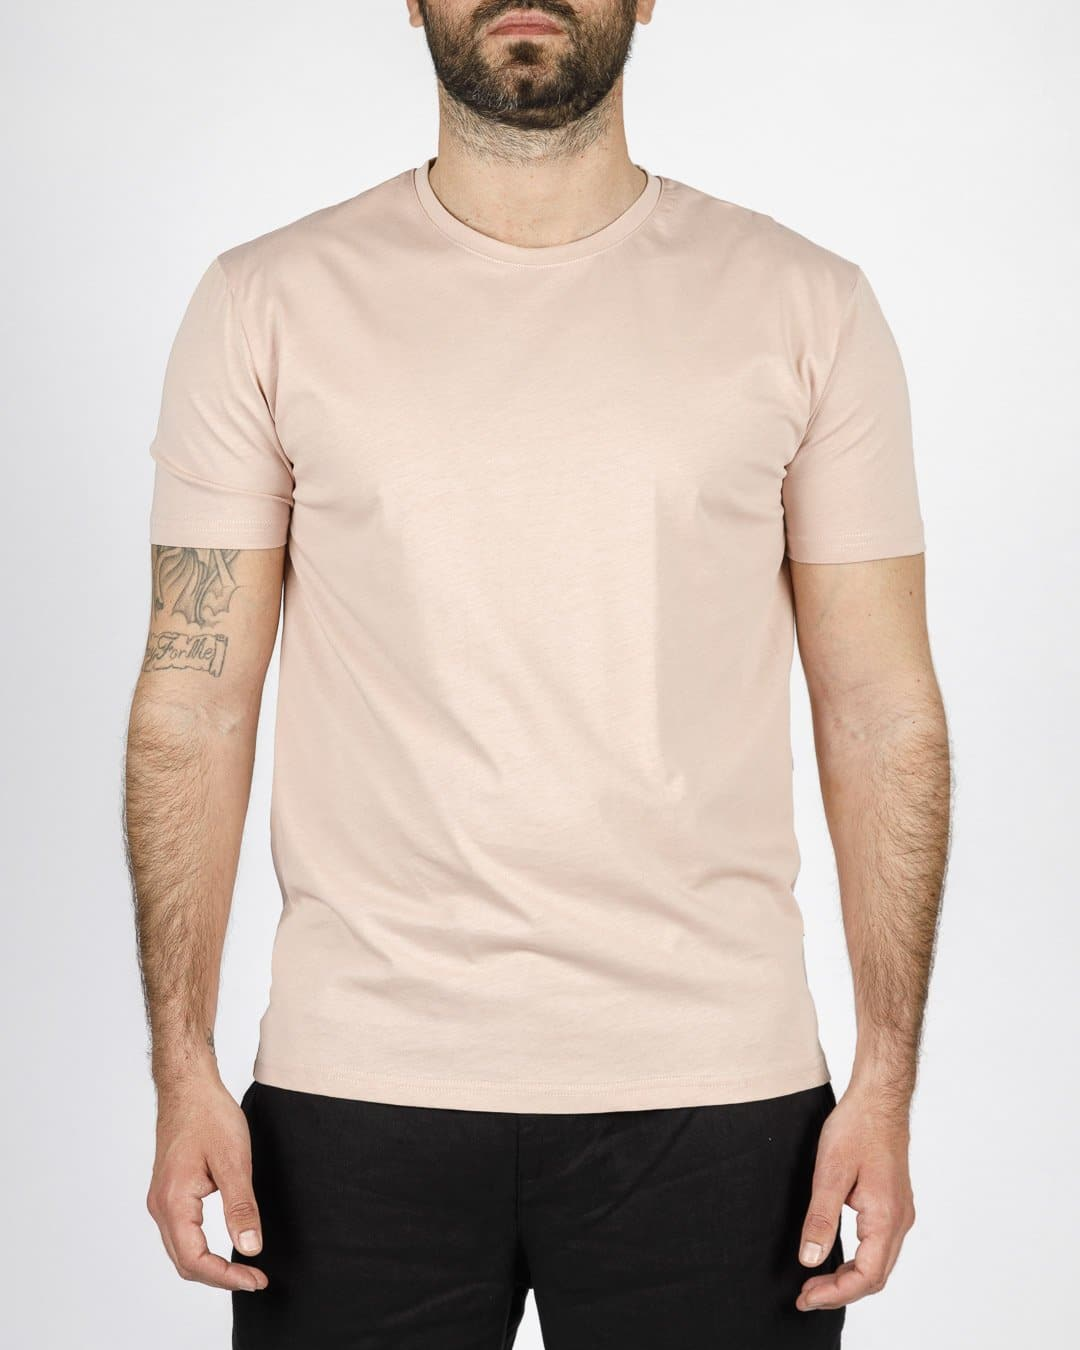 GIANNI LUPO EXTRA FINE COTTON T-SHIRT. ΧΡΩΜΑ ΠΑΣΤΕΛ ΡΟΖ.